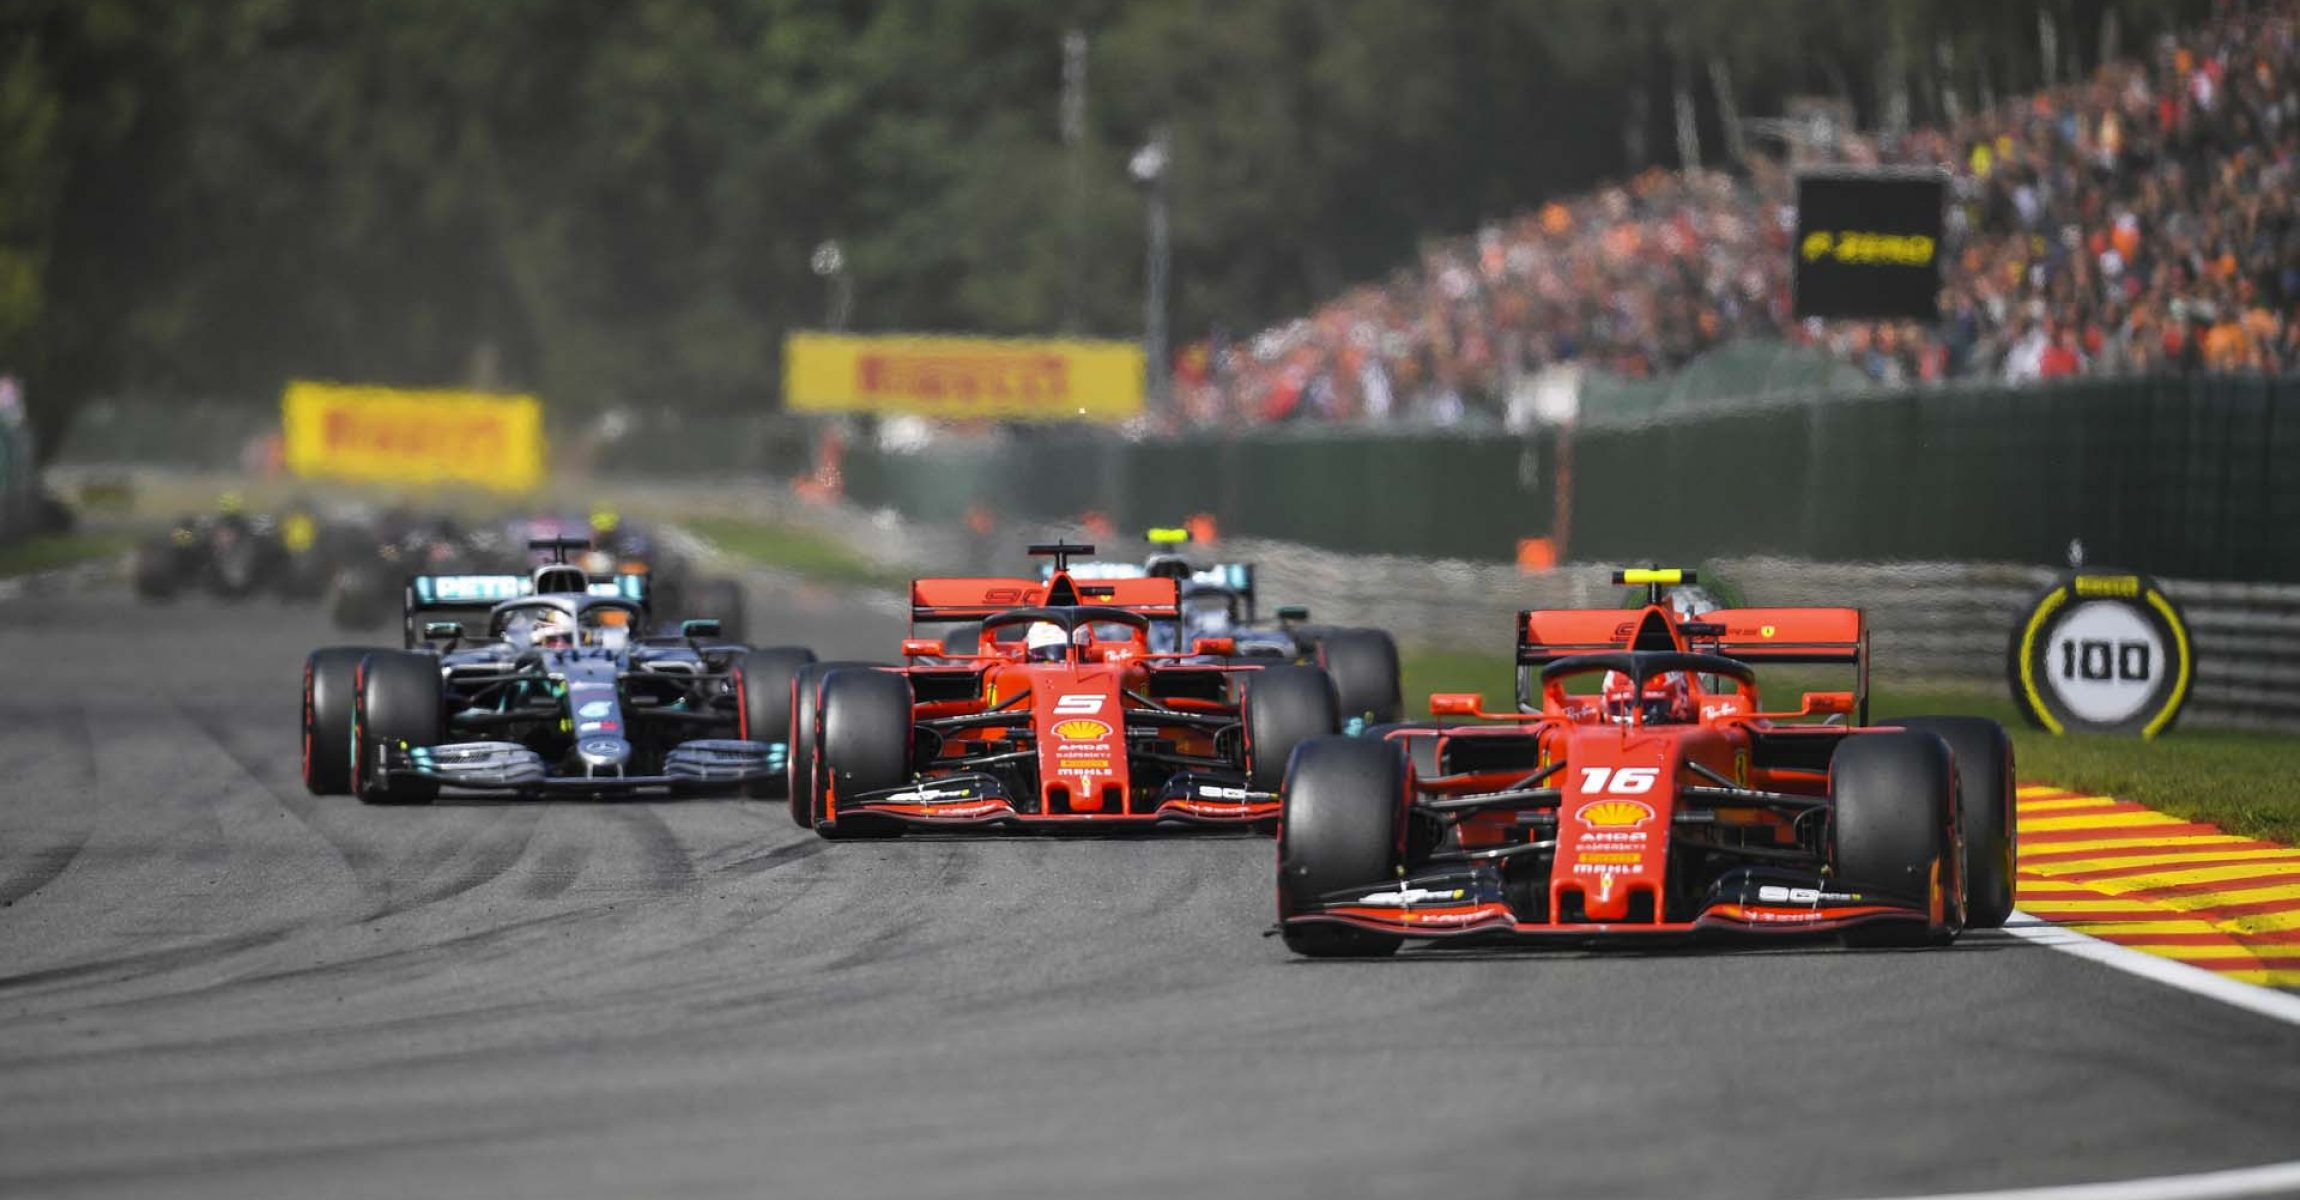 SPA-FRANCORCHAMPS, BELGIUM - SEPTEMBER 01: Charles Leclerc, Ferrari SF90, leads Sebastian Vettel, Ferrari SF90, Lewis Hamilton, Mercedes AMG F1 W10, Valtteri Bottas, Mercedes AMG W10, and the rest of the field on the opening lap during the Belgian GP at Spa-Francorchamps on September 01, 2019 in Spa-Francorchamps, Belgium. (Photo by Simon Galloway / LAT Images)